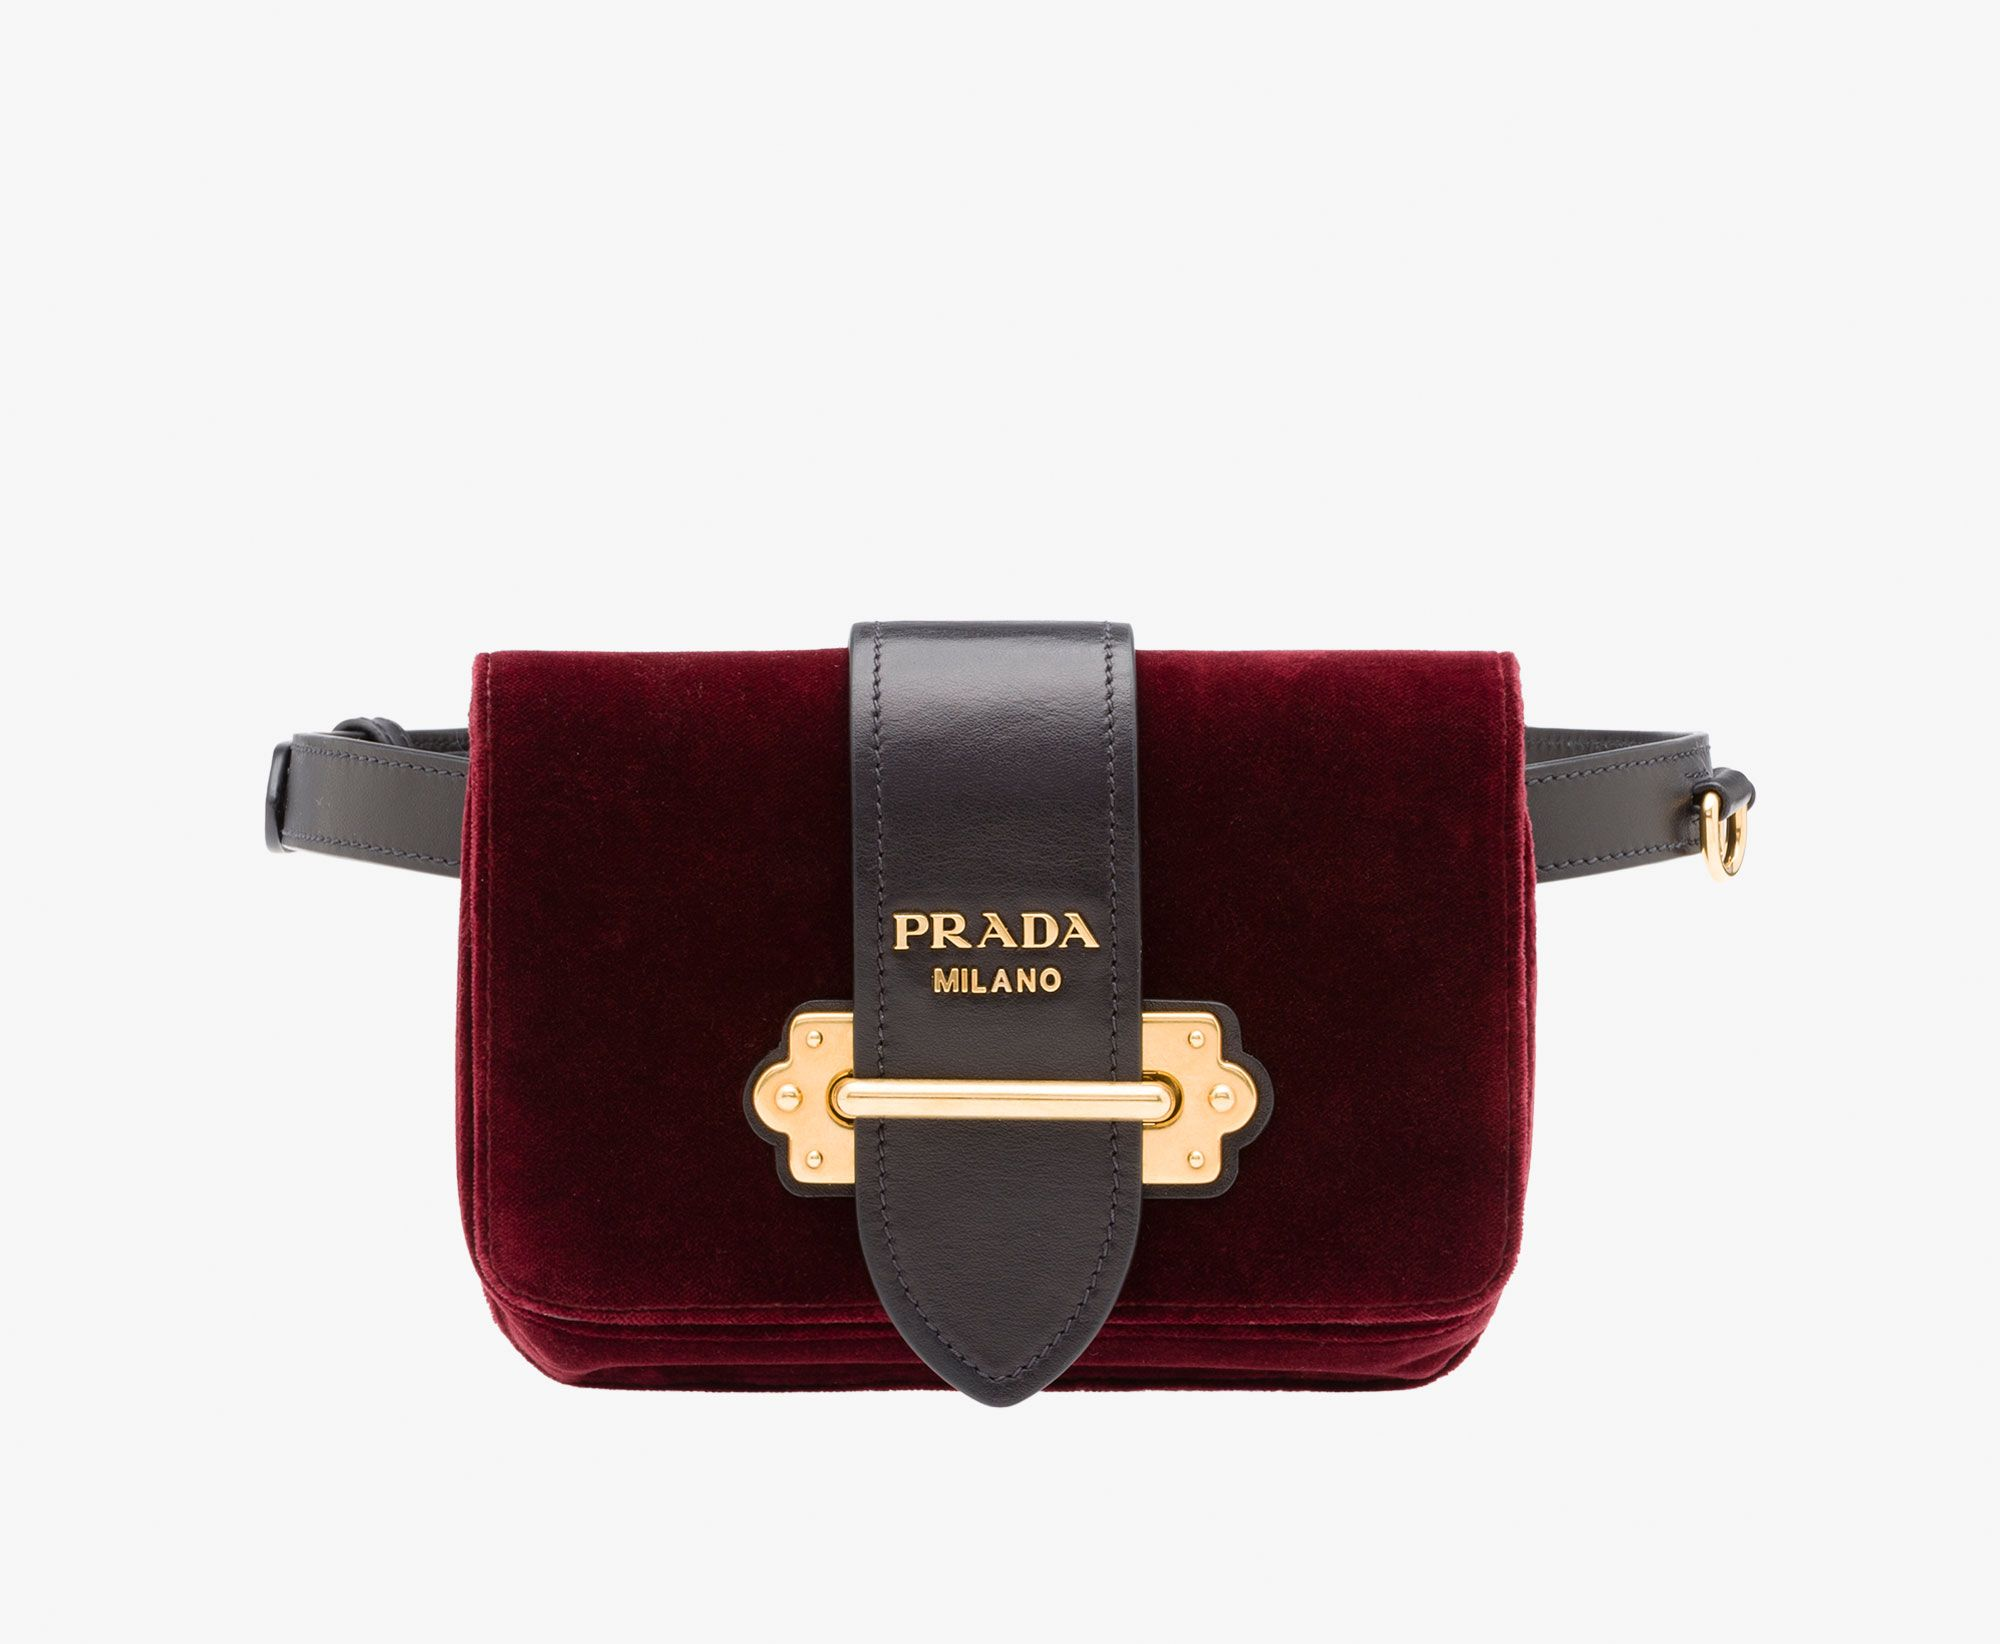 83f93eaa9275 Prada Cahier velvet and calf leather fanny pack Detachable metal chain  shoulder strap Removable 2 cm wide leather belt with metal buckle  Bronze-tone metal ...